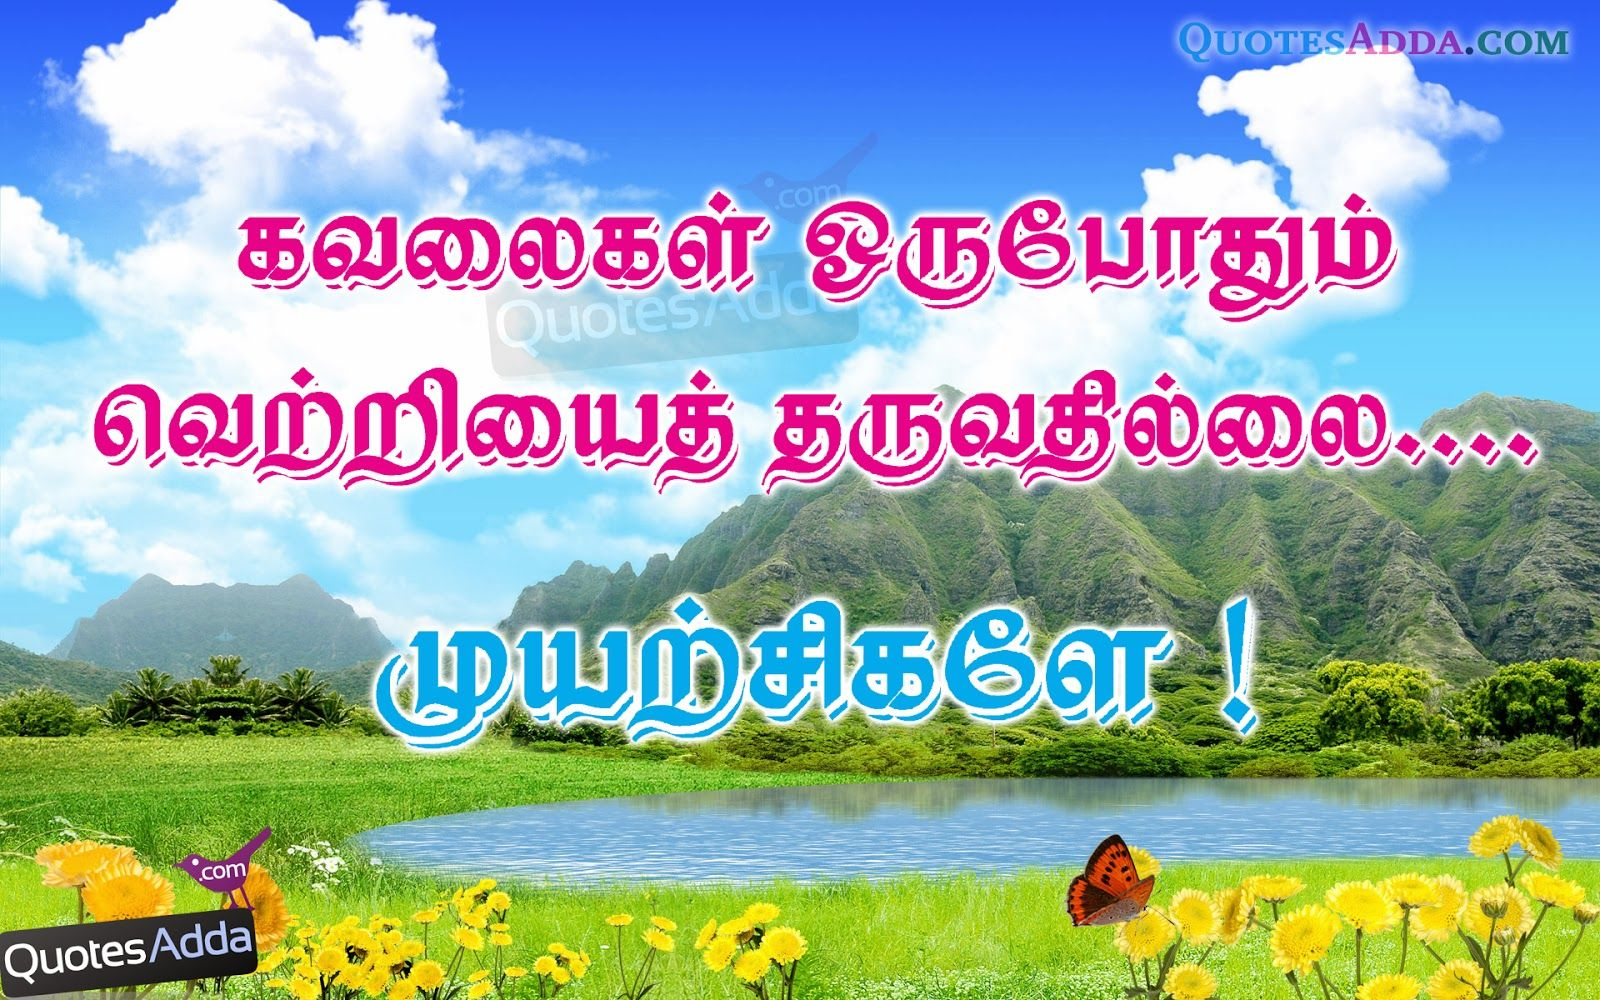 31 awesome tamil inspirational quotes tamil language